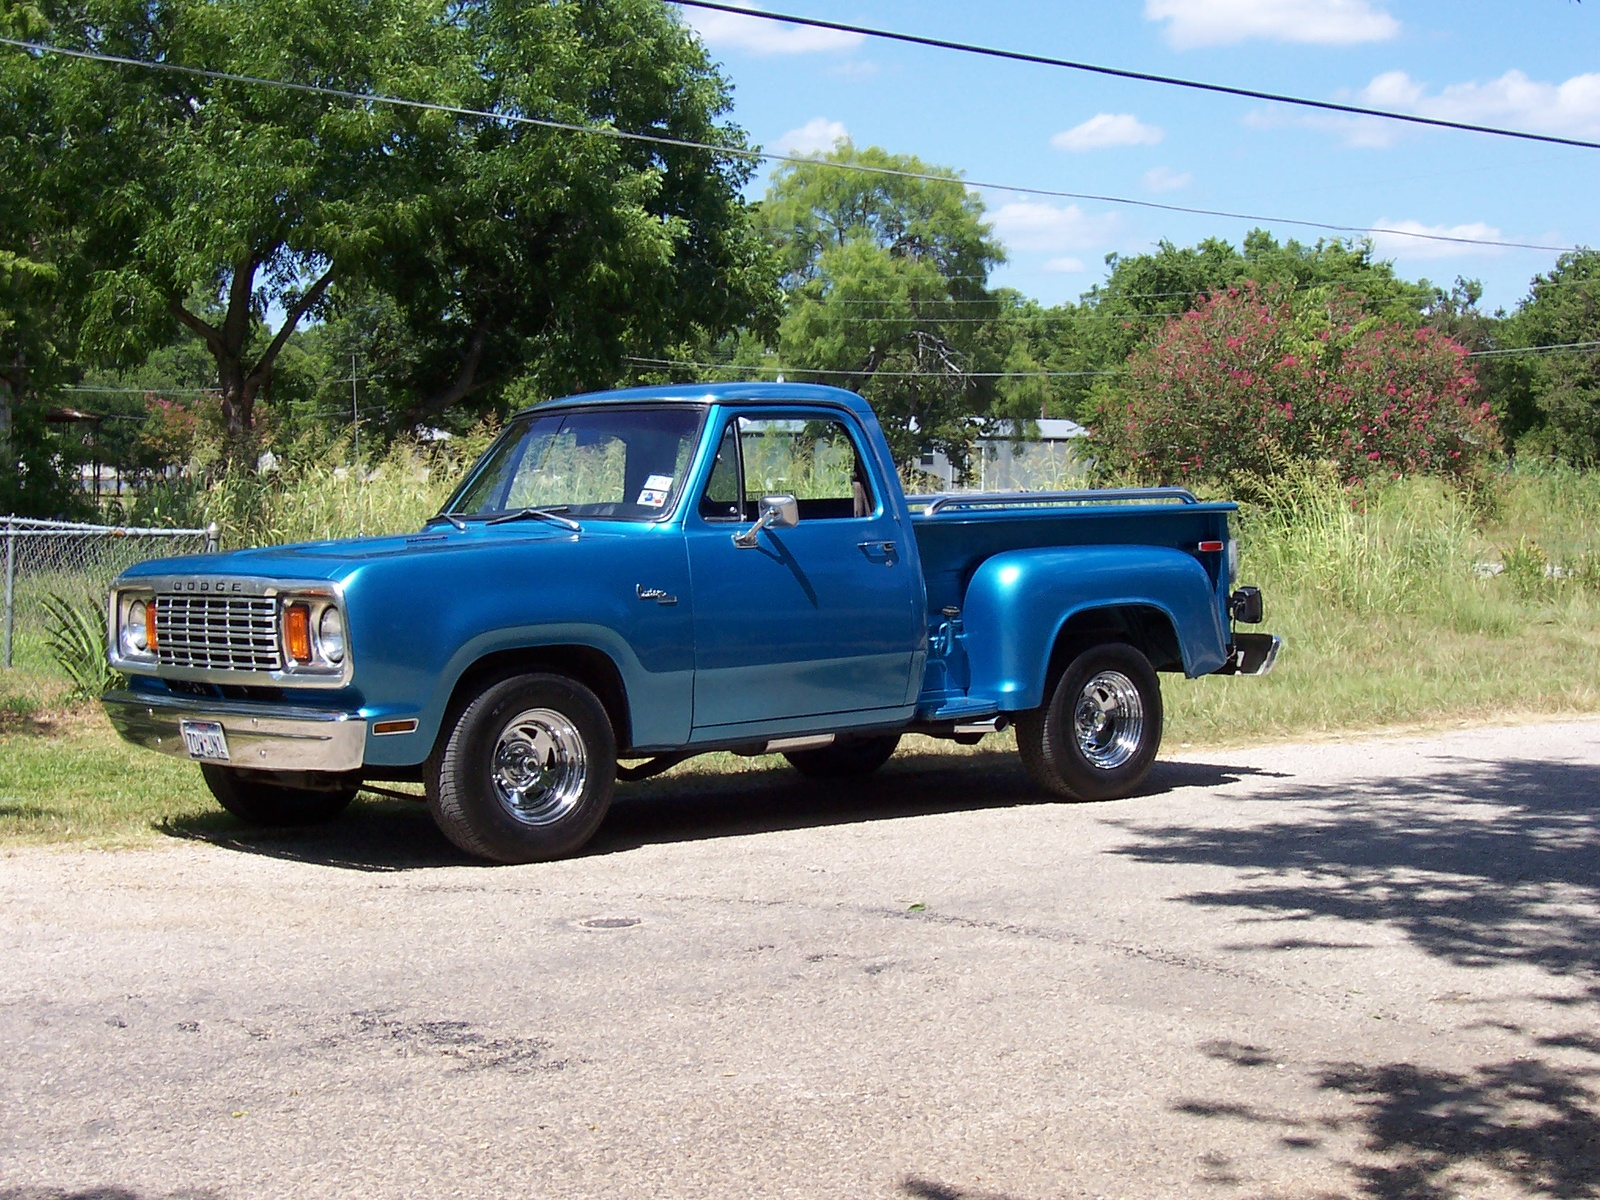 1981 Dodge Ram - Pictures - 1979 Dodge Ram 50 Pickup pictu ...